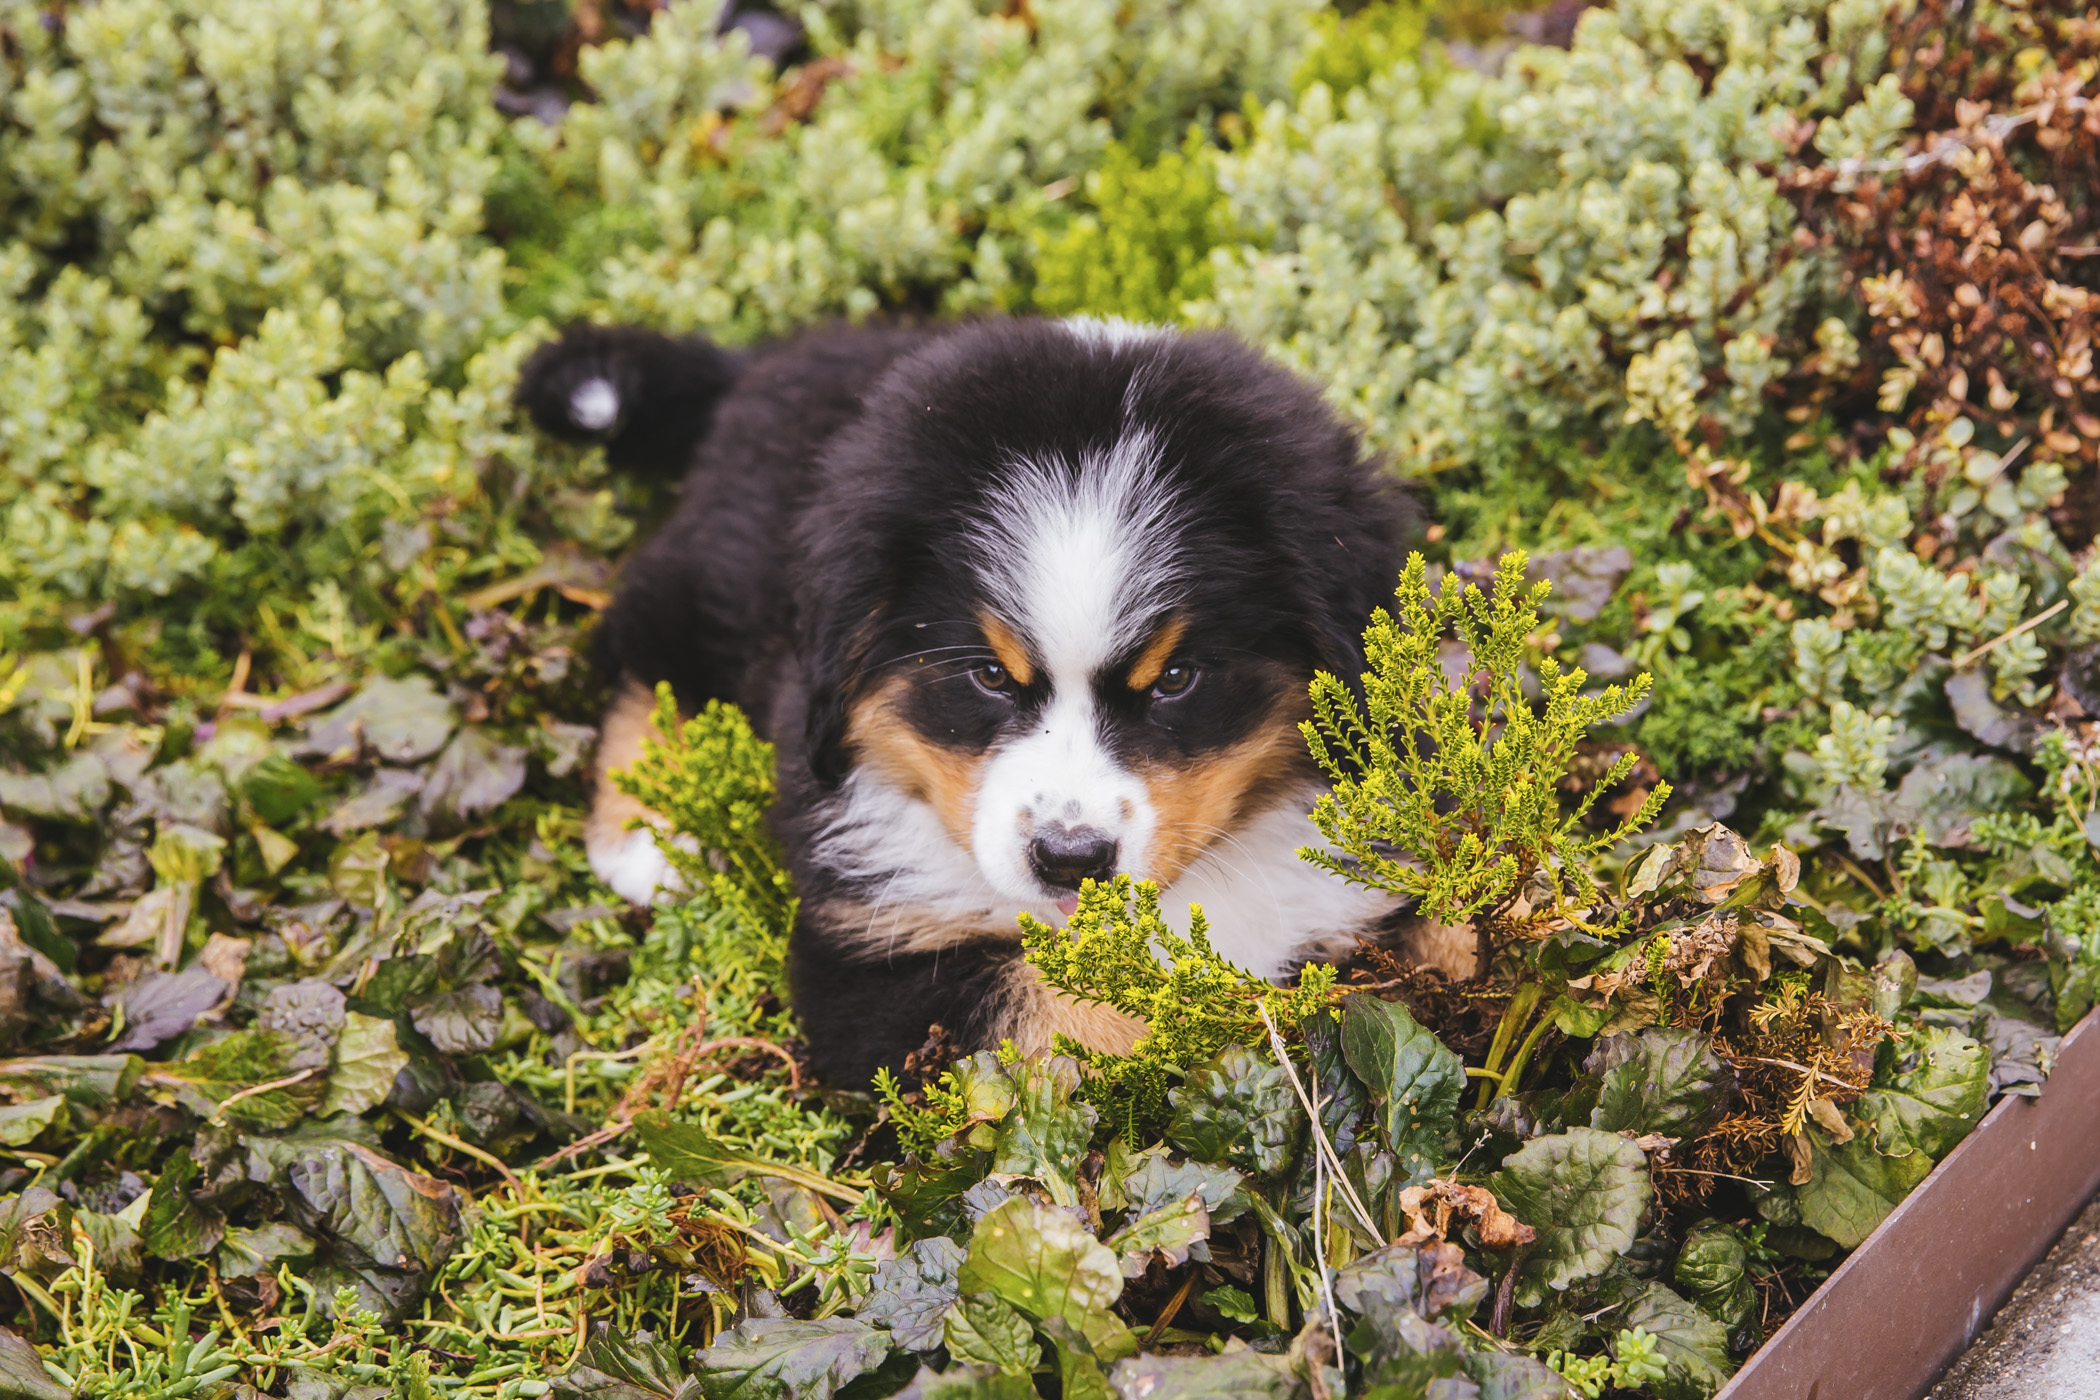 <p>Meet this gorgeous girl, Linda! Linda is 12 weeks old and has spent most of this Fall trying to get attention from her big fur-brother Phil. Linda loves belly rubs, treats and long naps after chasing Phil around the yard. She likes Phil, breweries and treats. You can follow Linda's life on her older brother's instagram page, @phil_the_berner.{&nbsp;}The Seattle RUFFined Spotlight is a weekly profile of local pets living and loving life in the PNW. If you or someone you know has a pet you'd like featured, email us at hello@seattlerefined.com or tag #SeattleRUFFined and your furbaby could be the next spotlighted! (Image: Sunita Martini / Seattle Refined).</p>